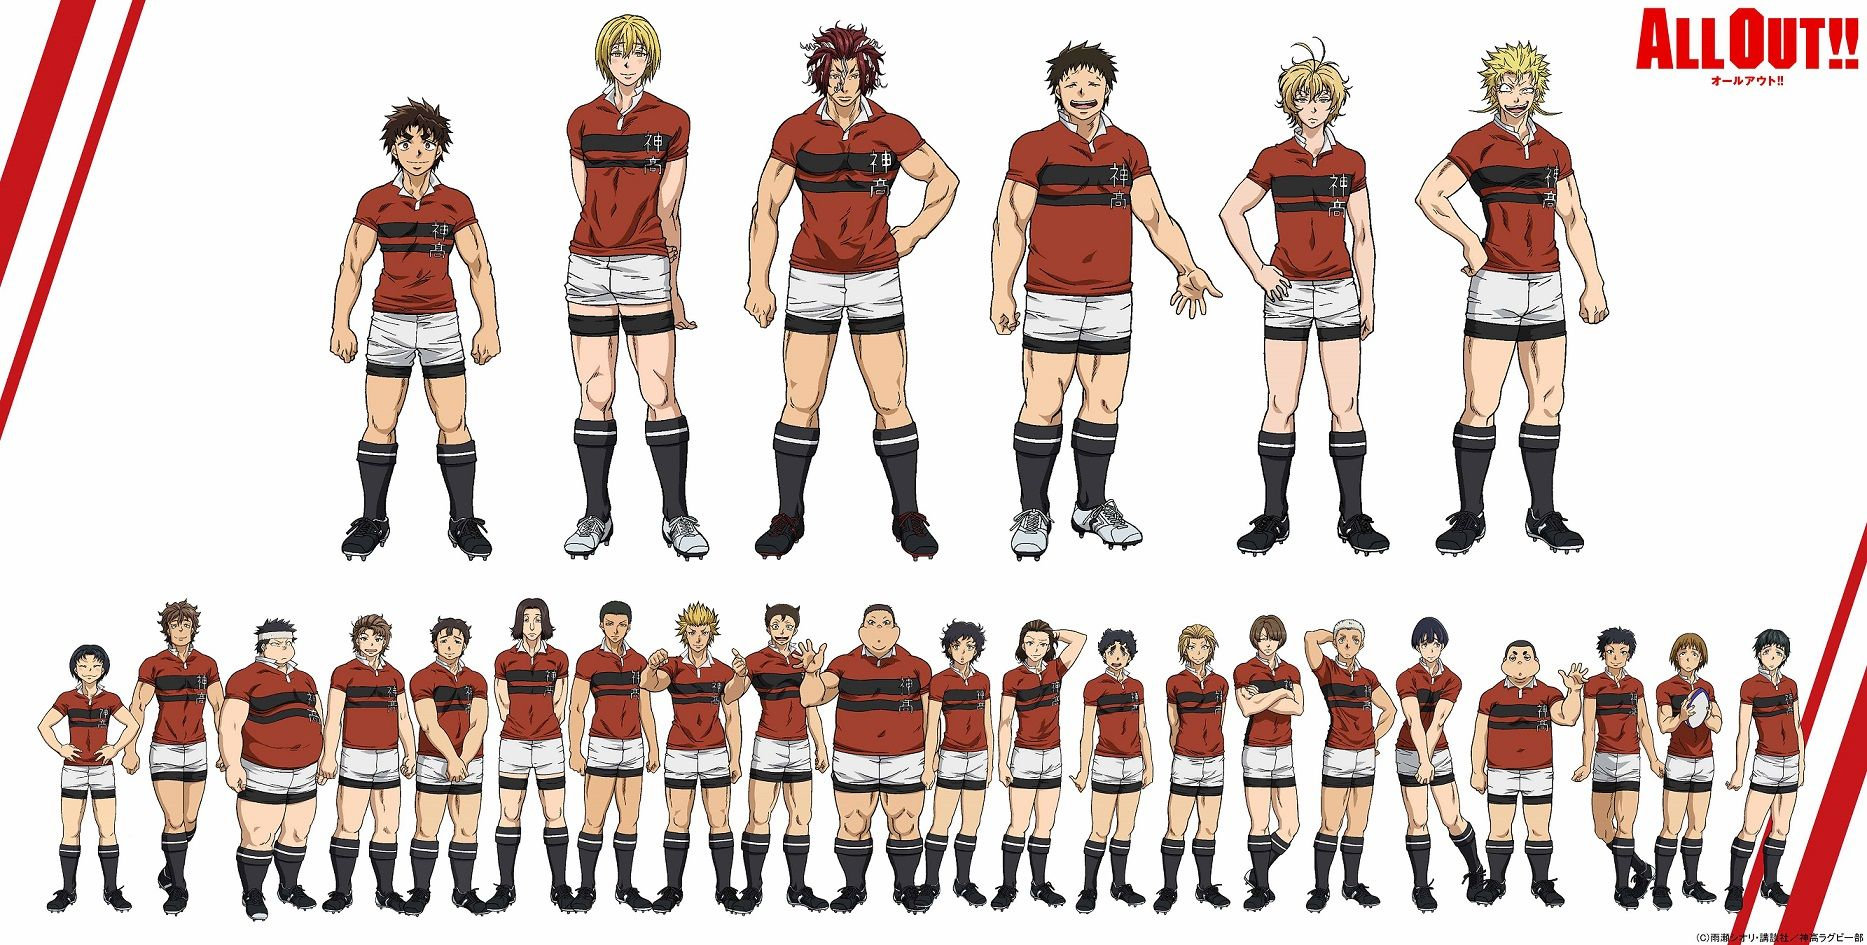 All Out Anime Rugby Asie